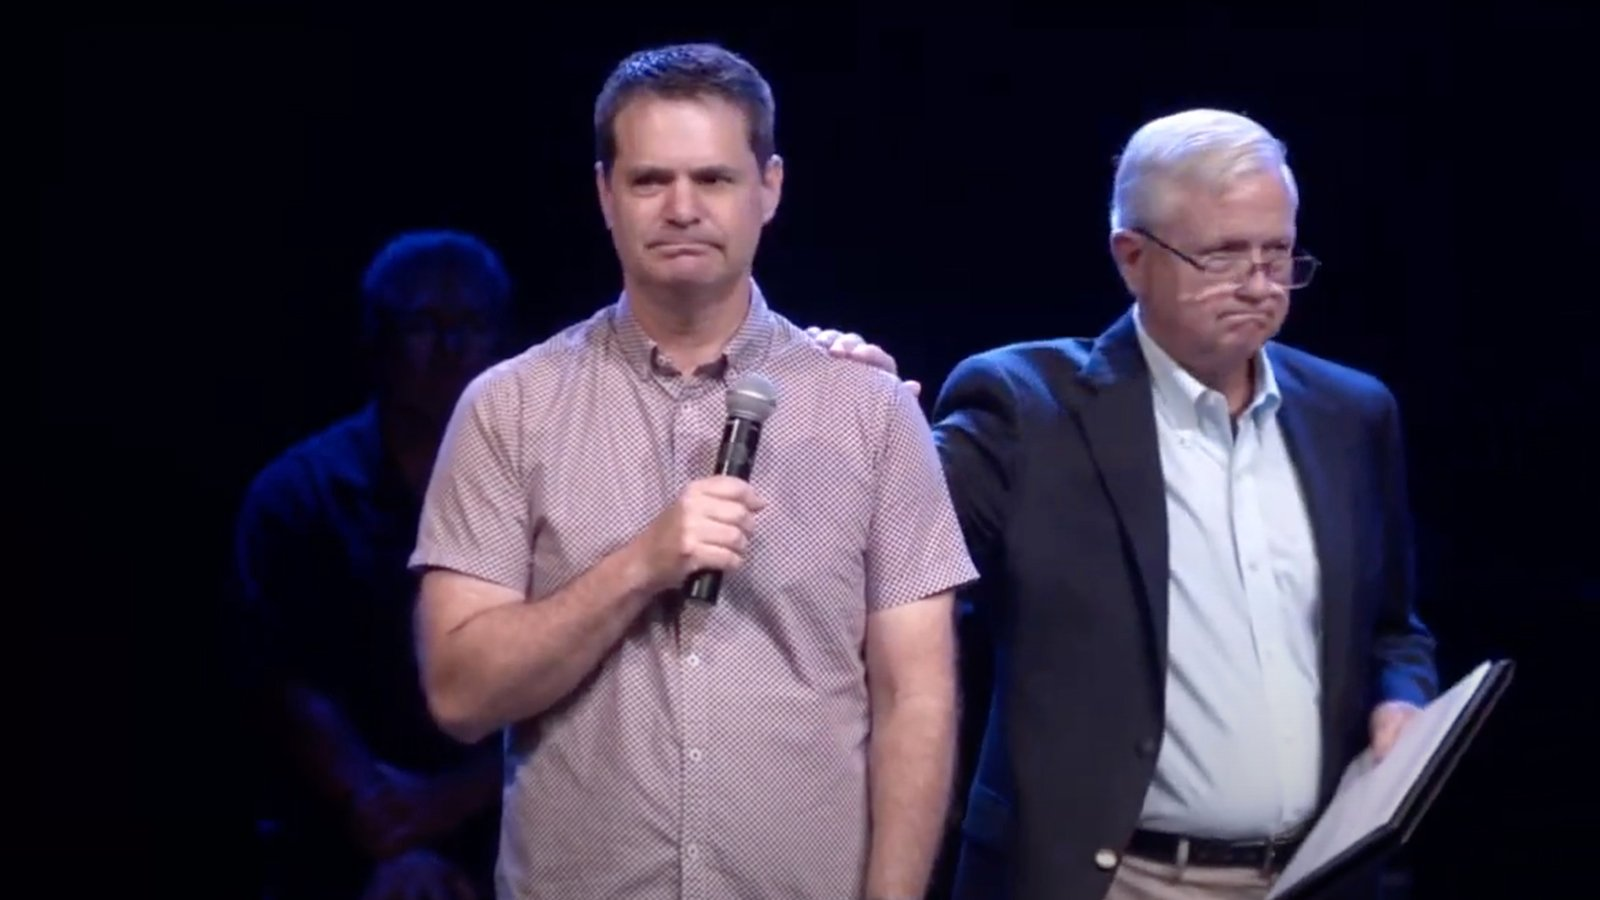 South Carolina Pastor Todd Elliott Quit His Church Because the Elders Thought They Should Run the Church and Not Him, and the People Revolted to Try to Get Him Back